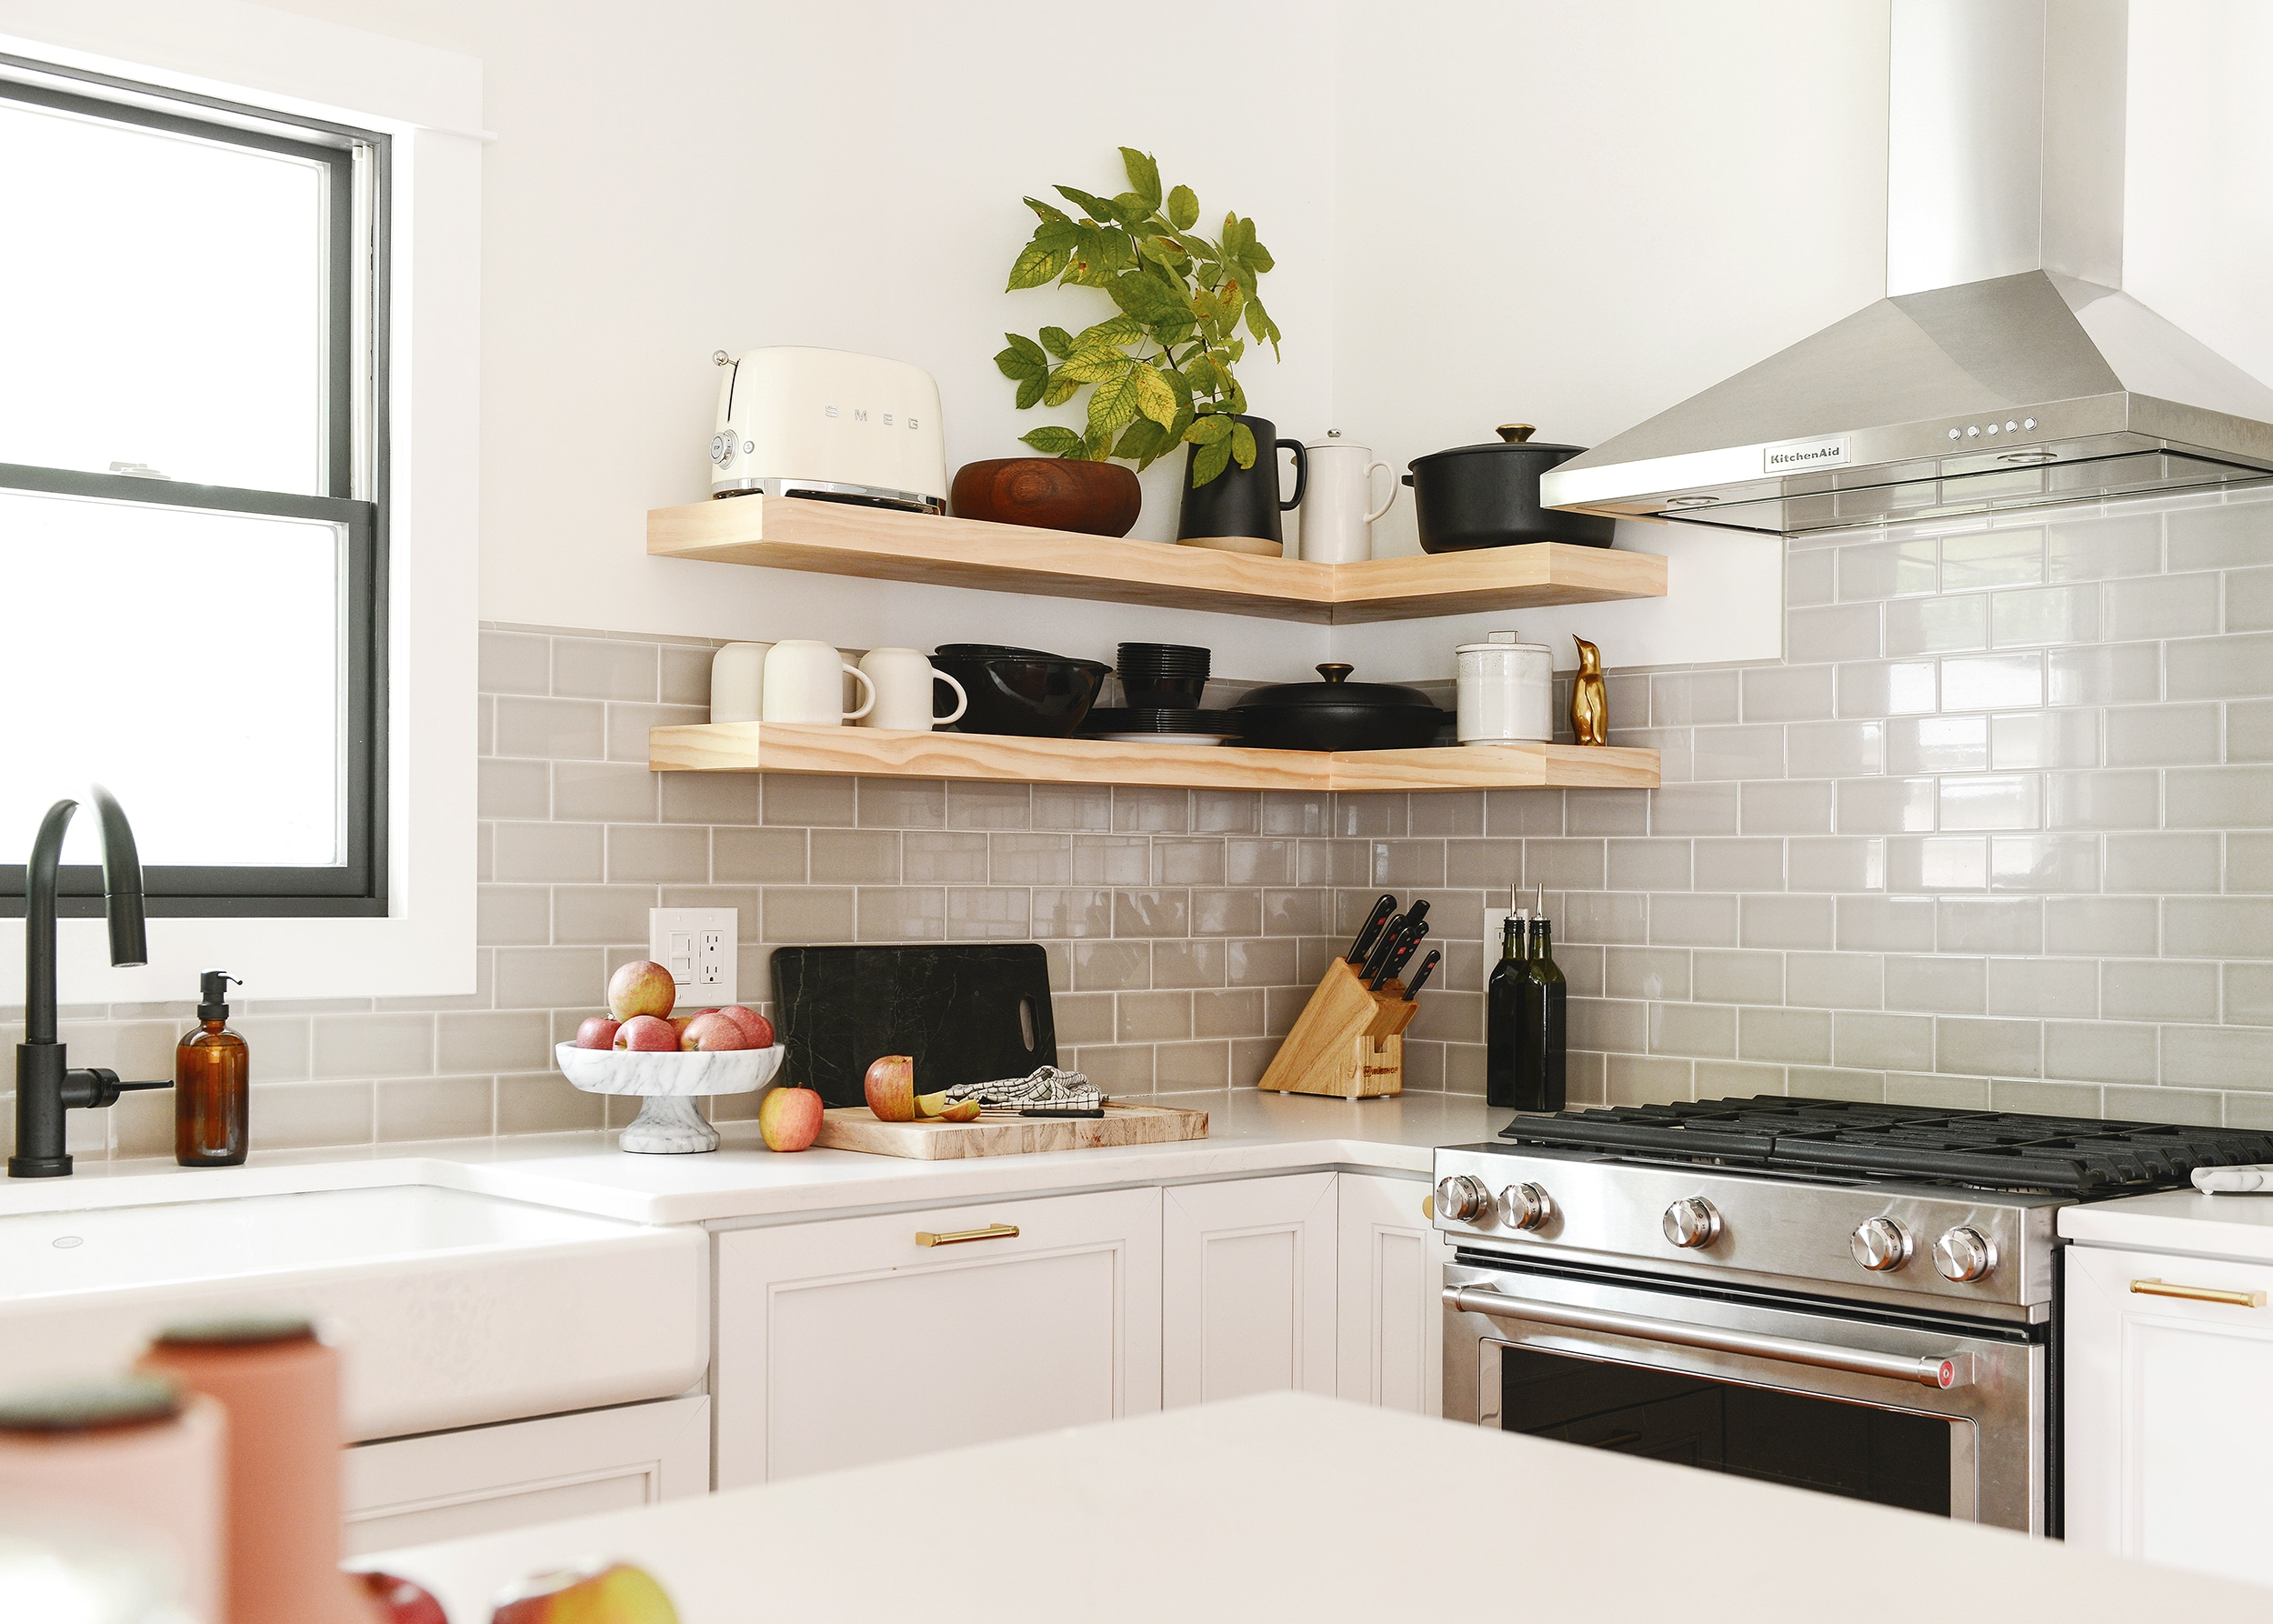 pantry shelving systems, pantry storage shelves